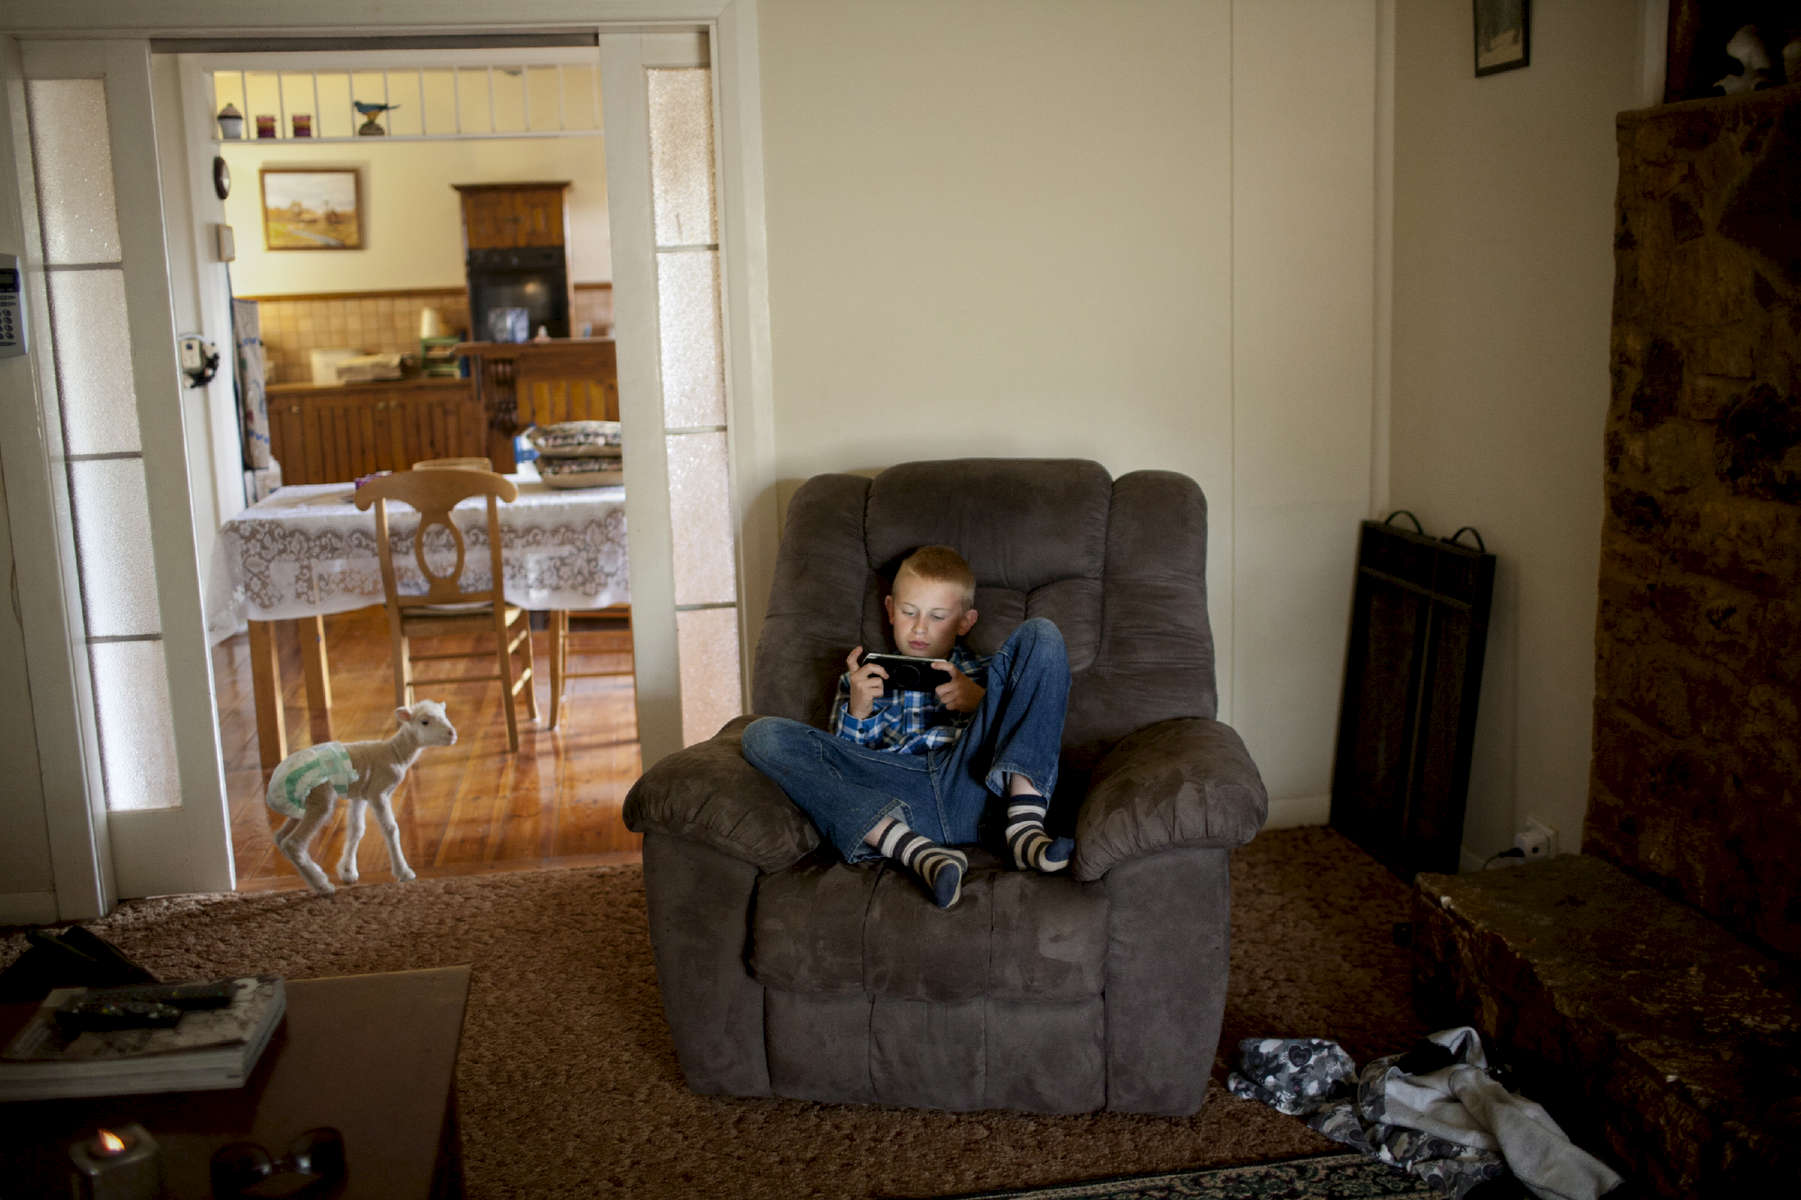 Cawnalmurtee station, 8 000 hectares. Creed family. Henry, 12 years old in his living room. New South Wales, Australia.